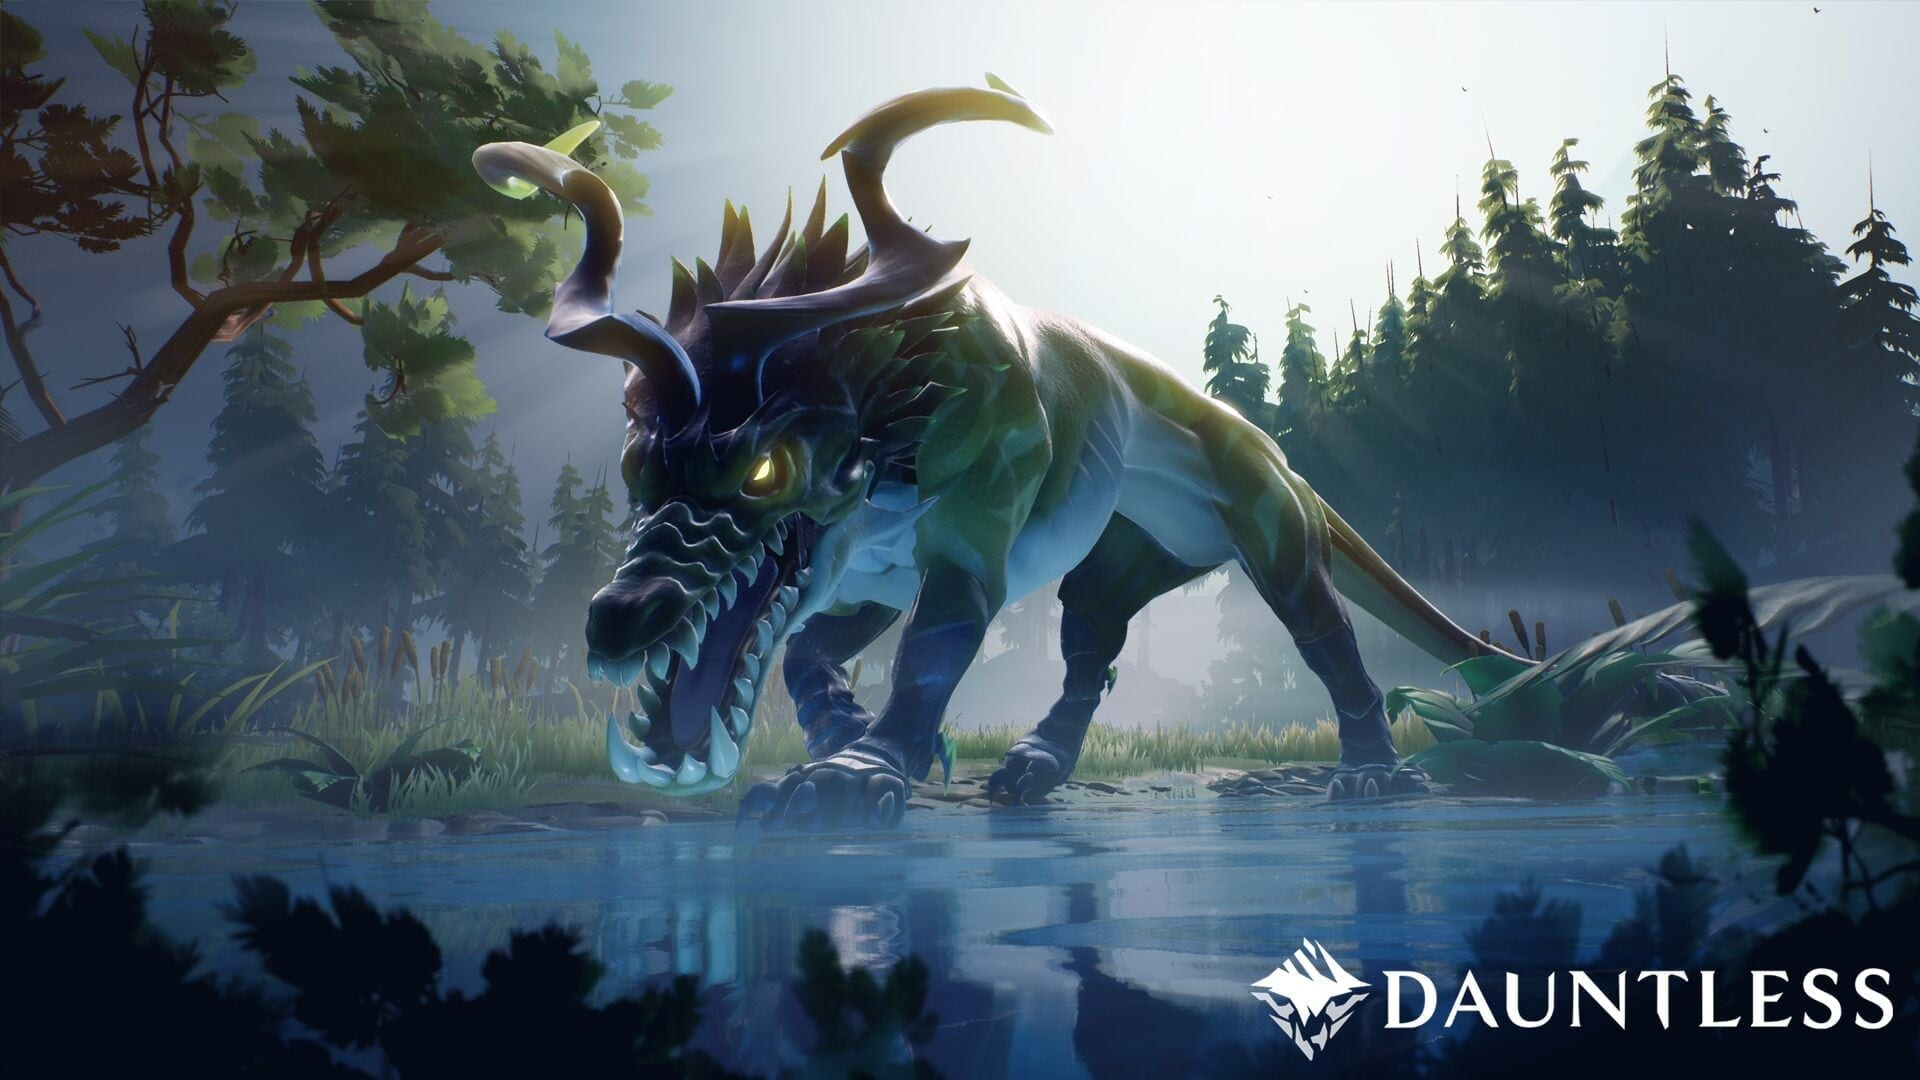 Dauntless Open Beta Phase Now Available To All Gamers